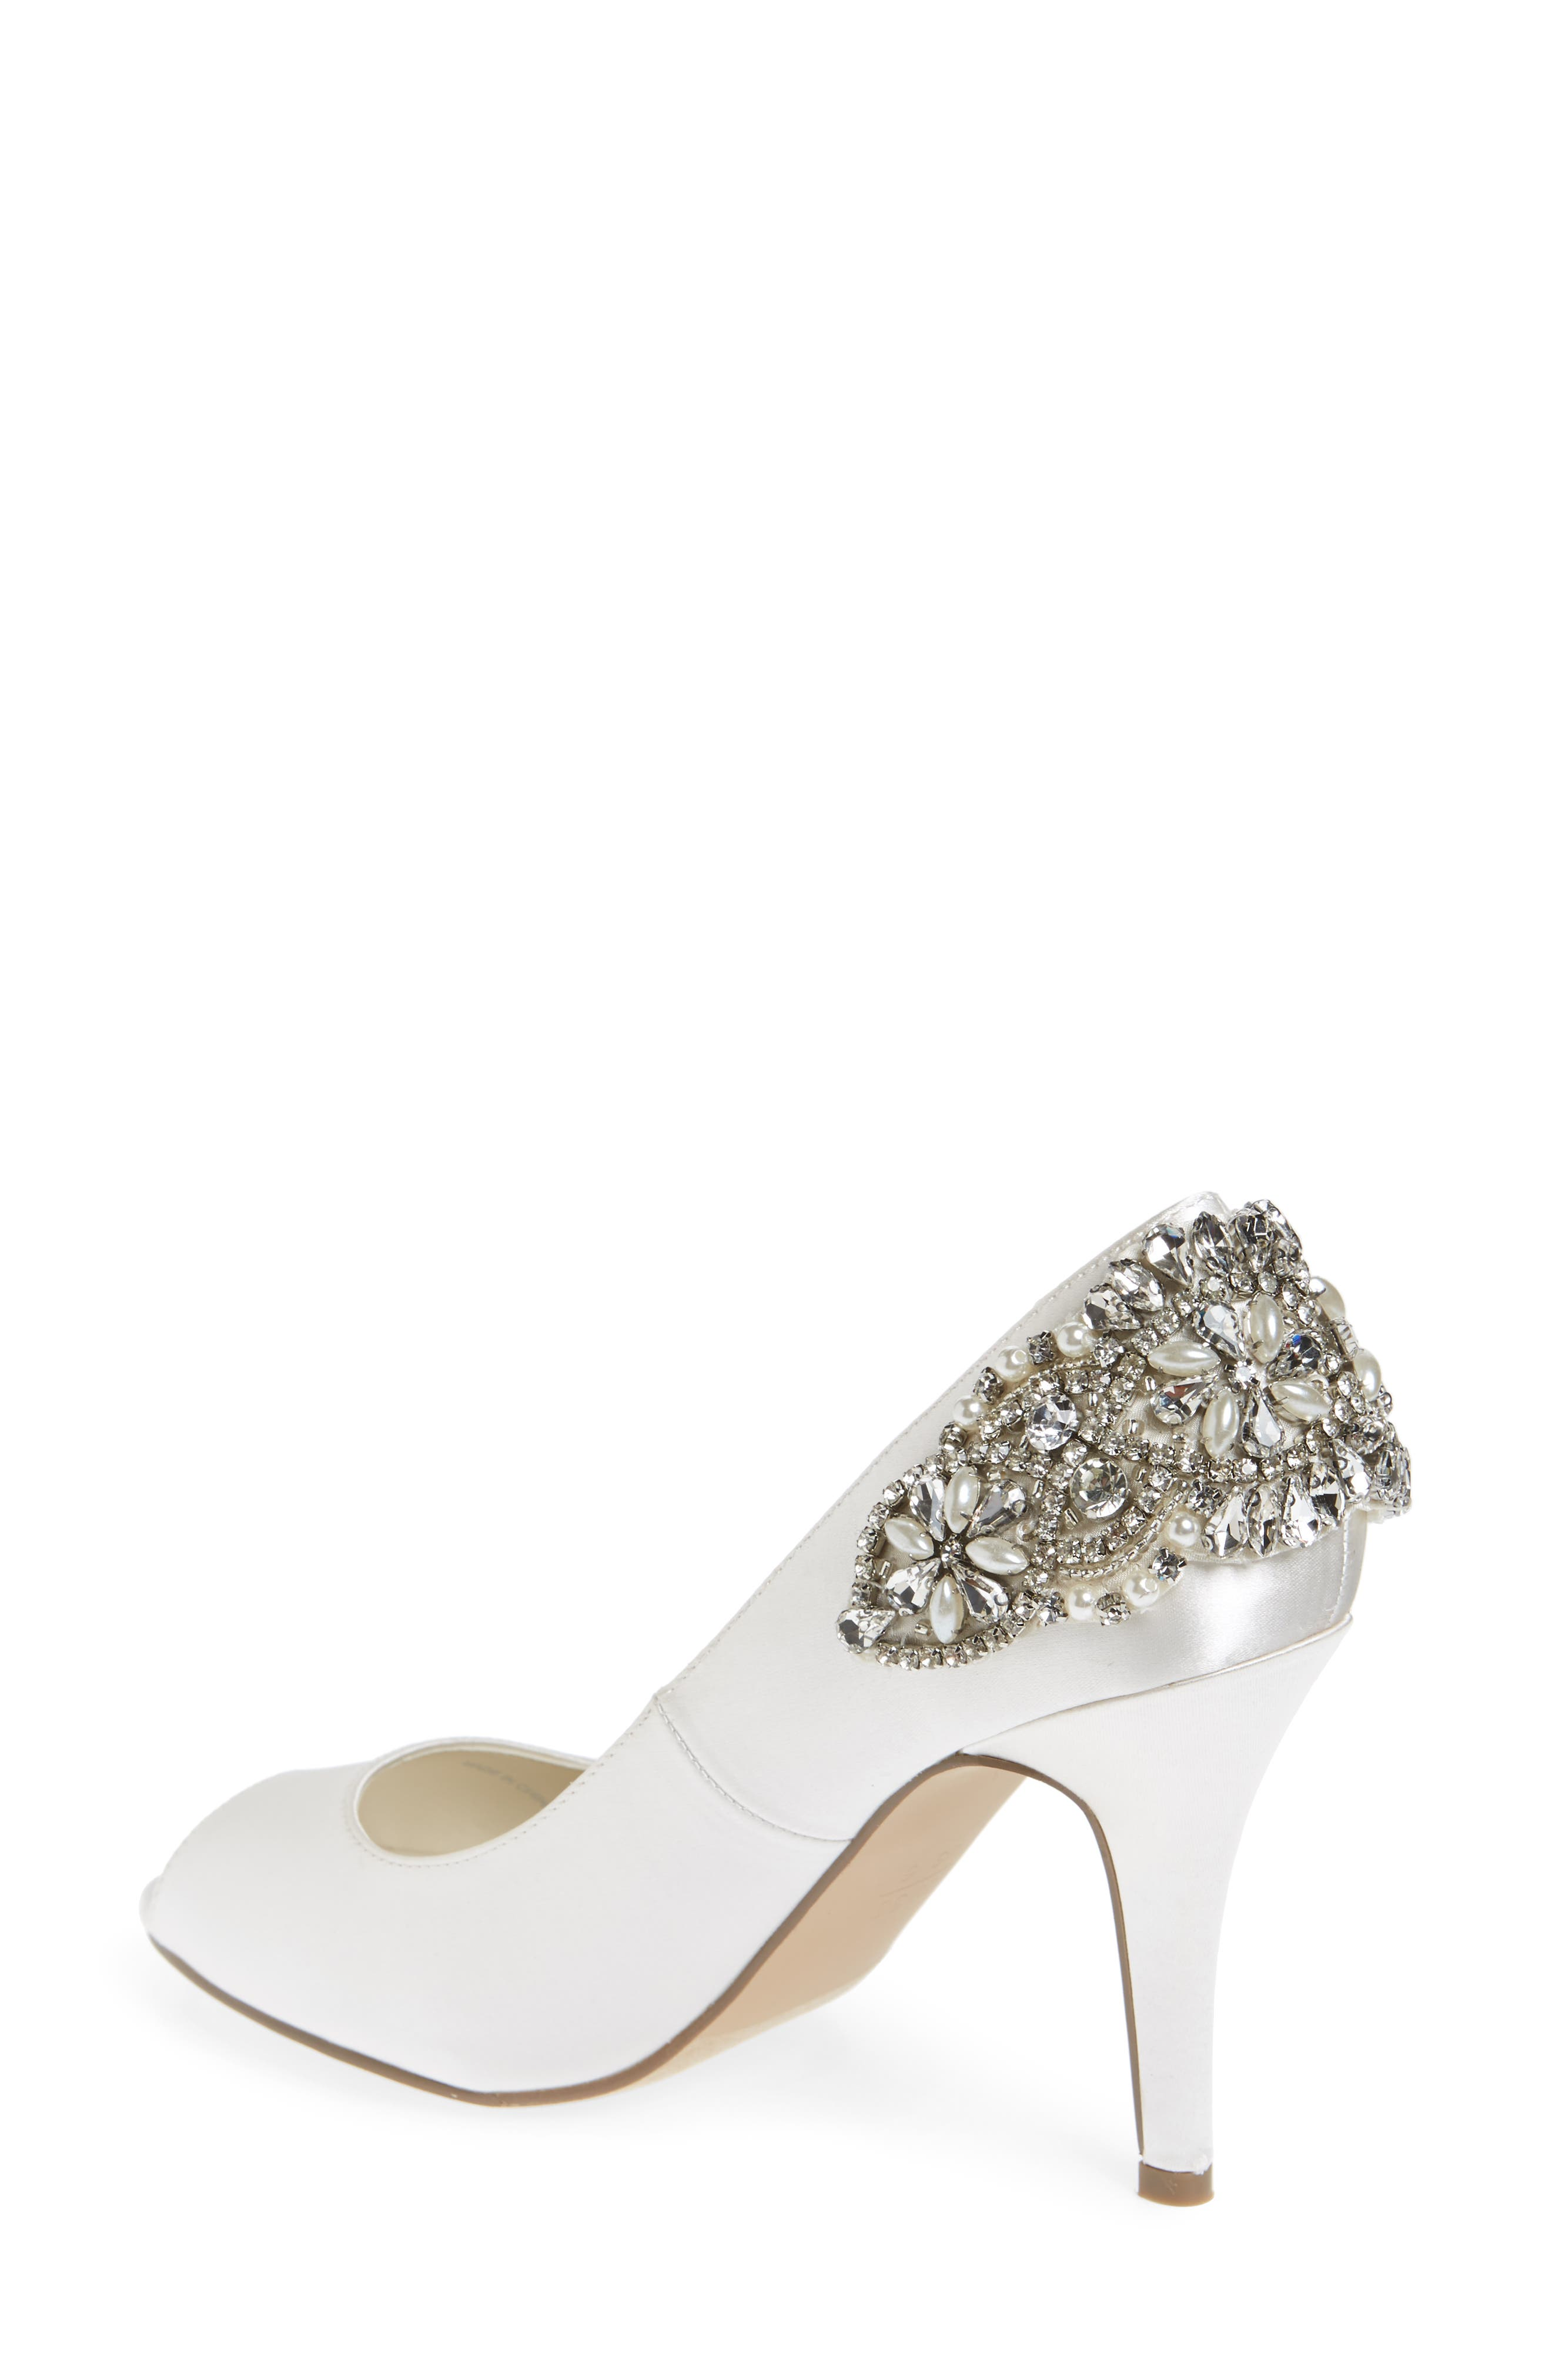 Cynthia Embellished Pump,                             Alternate thumbnail 2, color,                             IVORY SATIN